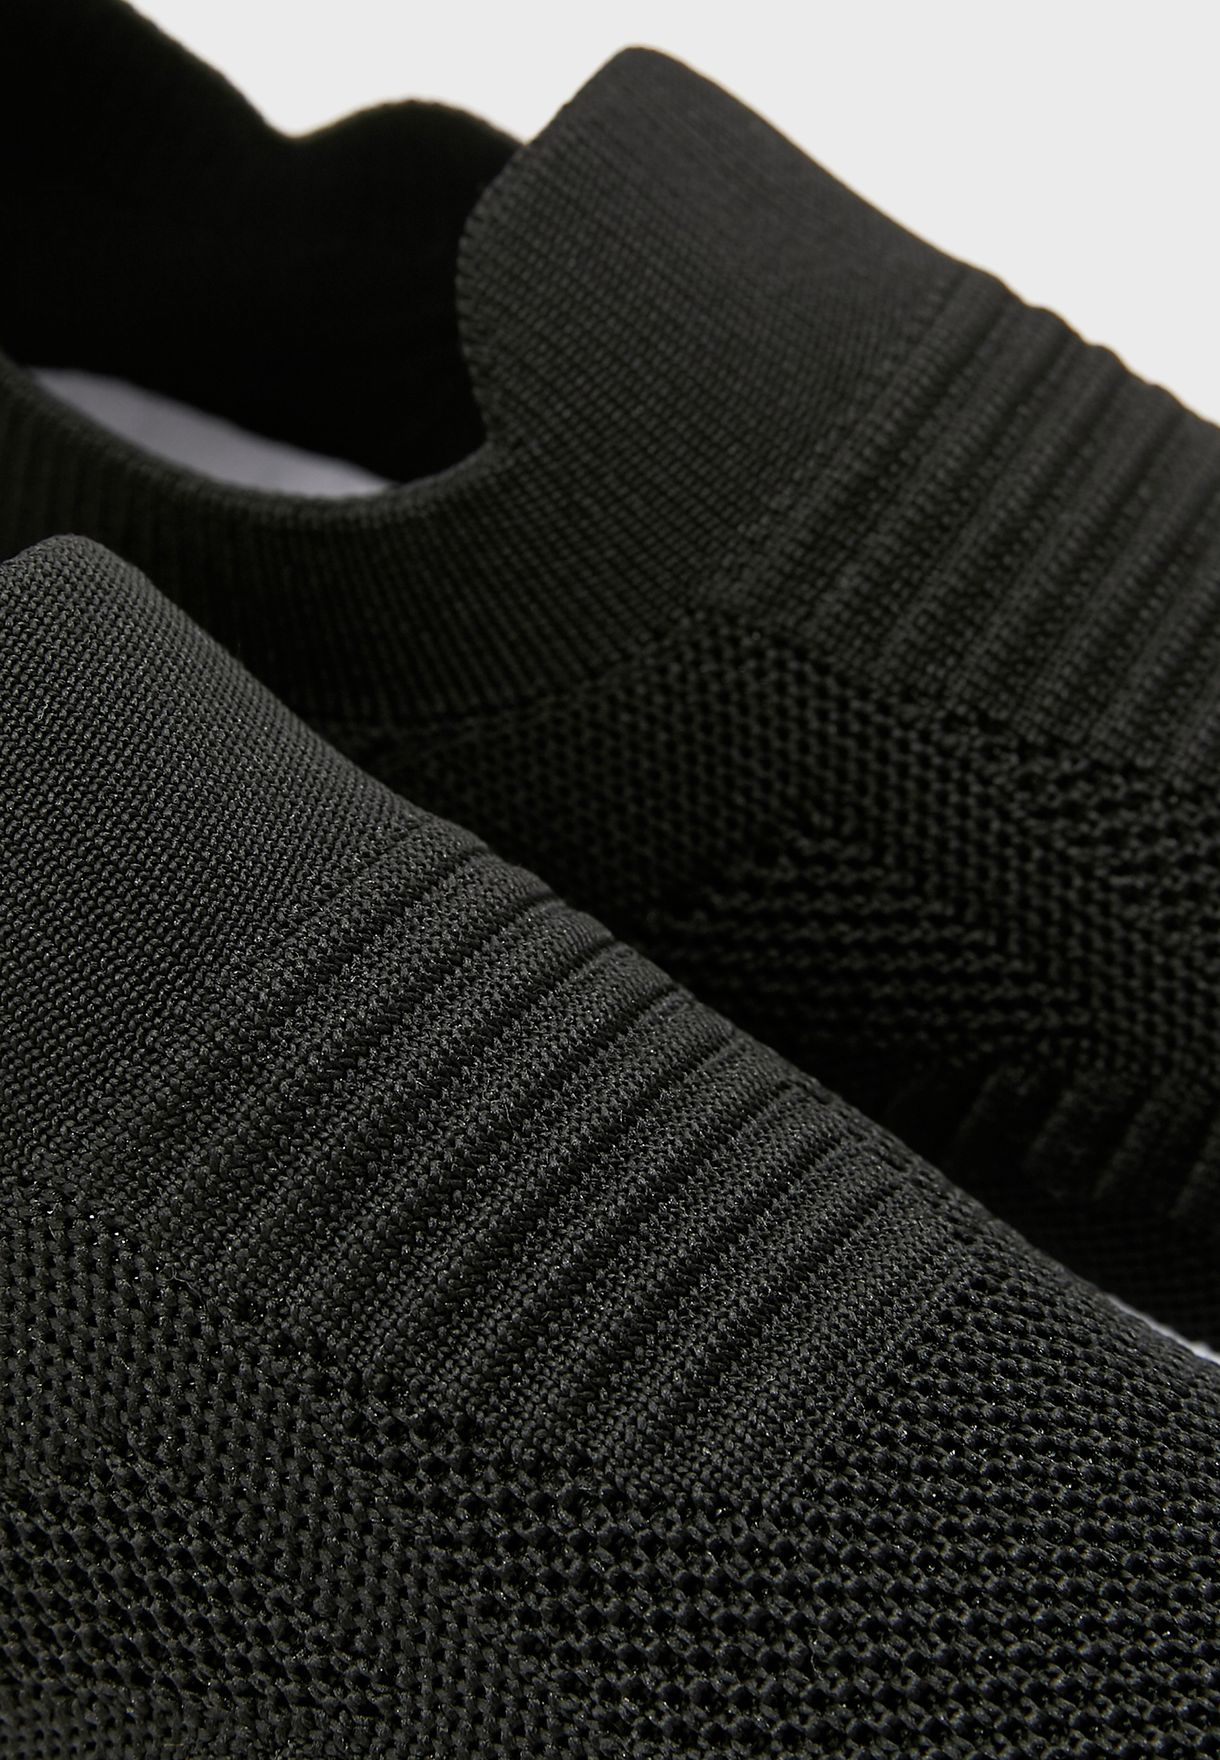 Casual Knit Slip On Sneakers